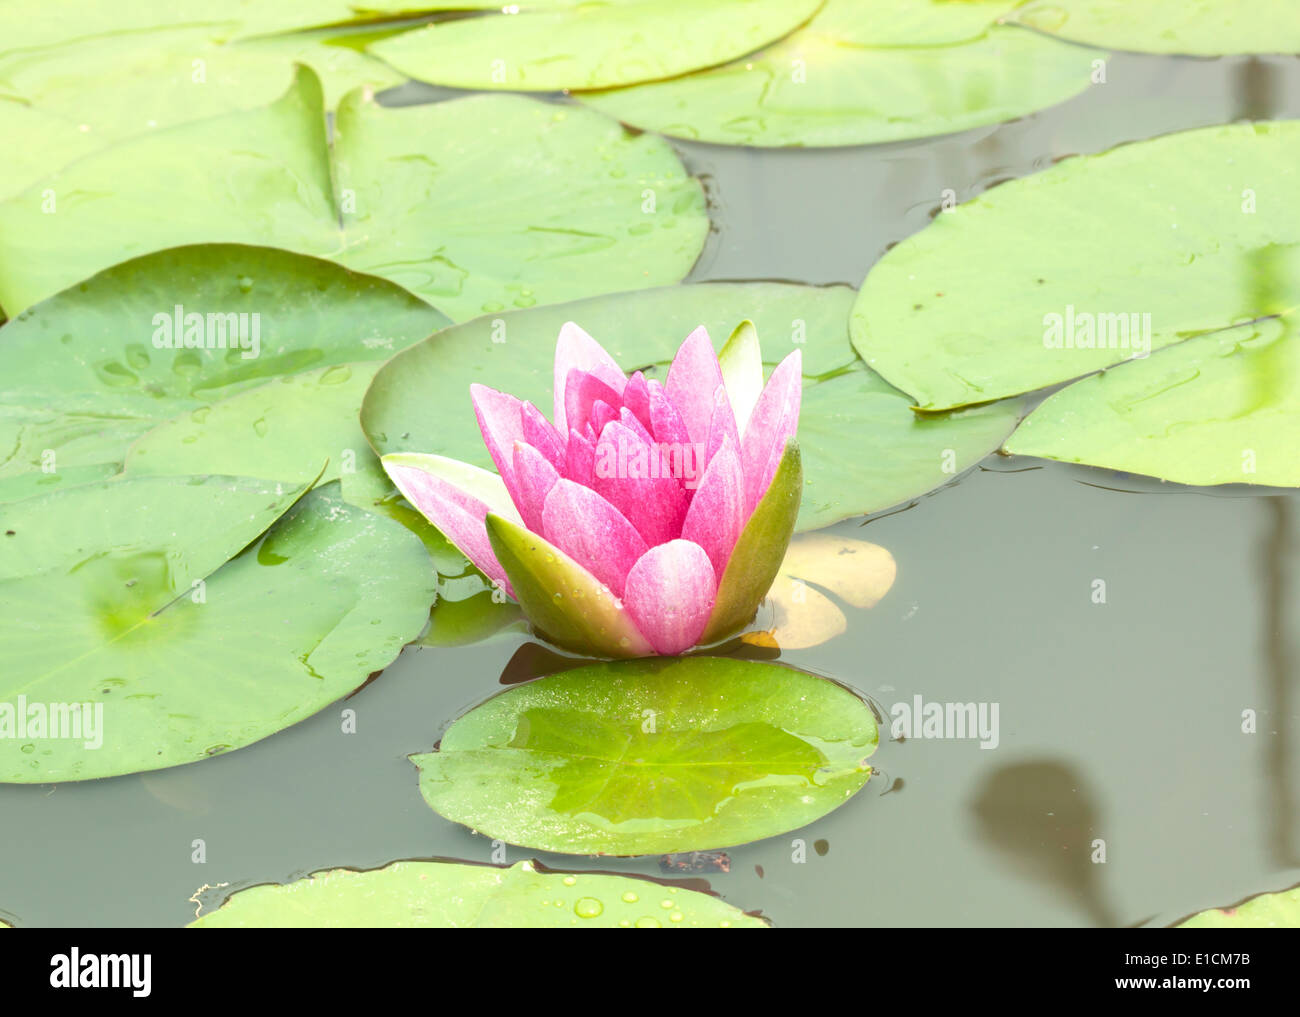 Image Of A Lotus Flower On The Water Stock Photo 69735439 Alamy